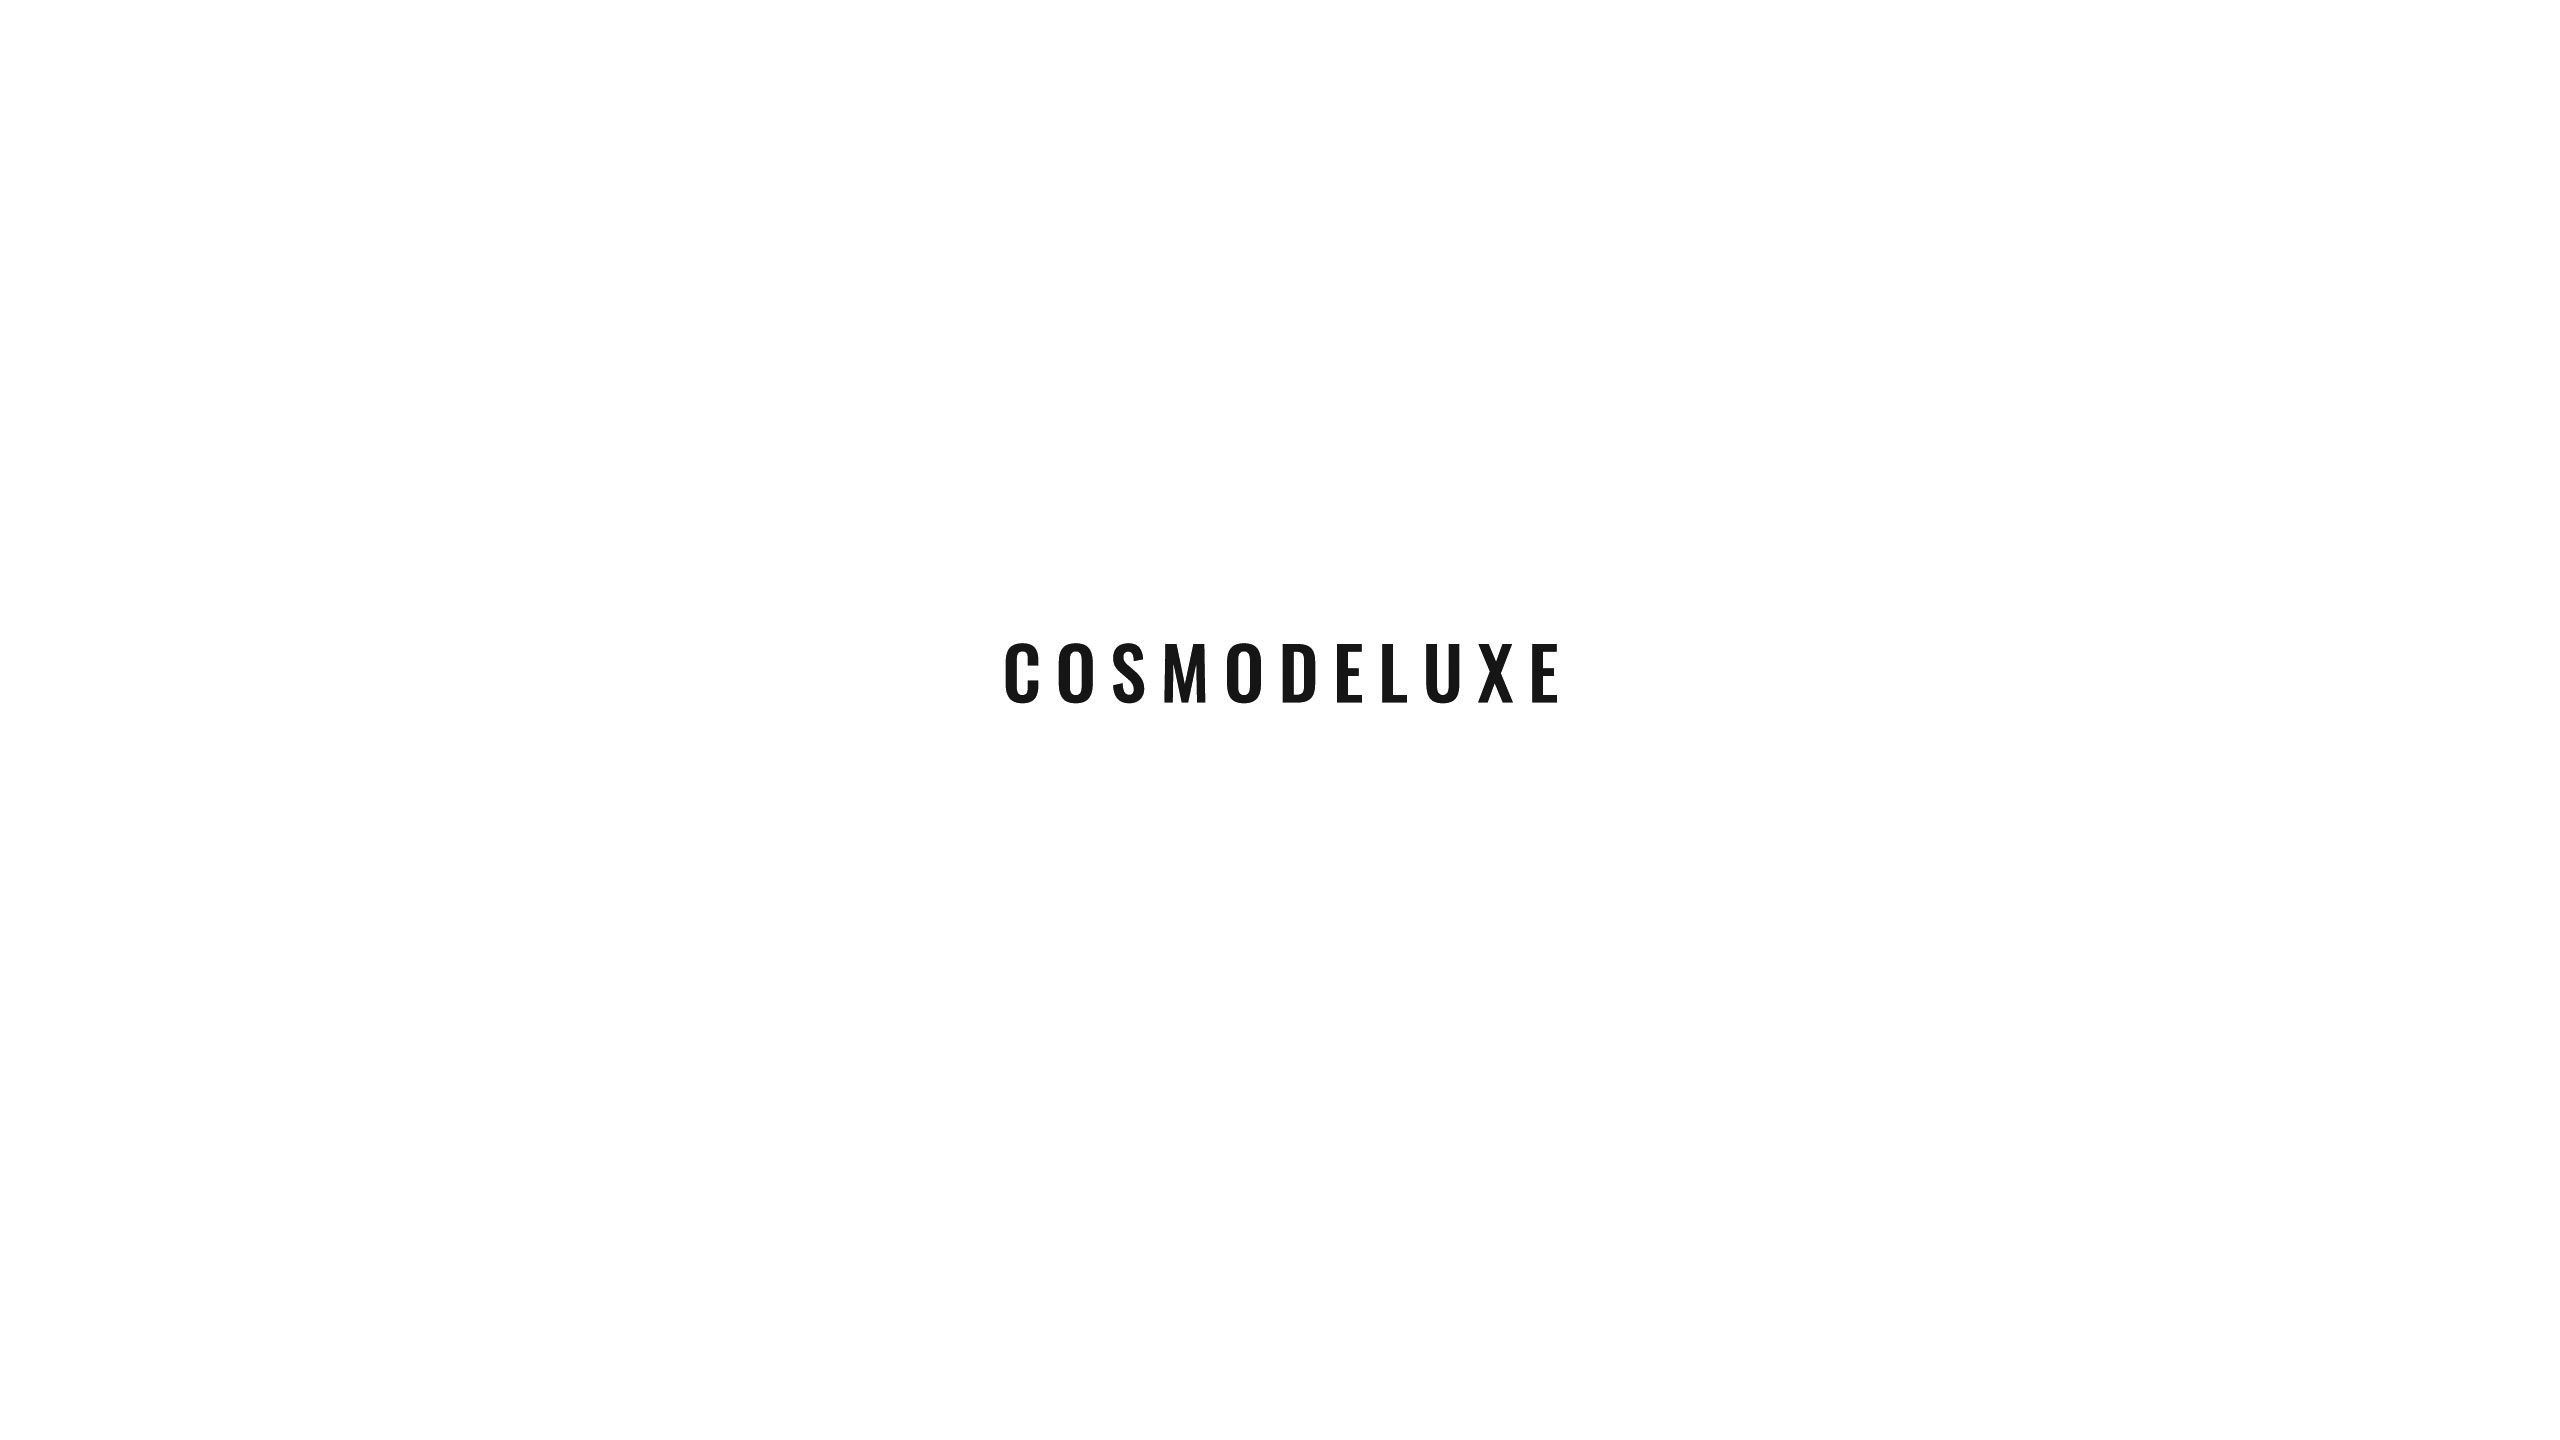 1a_Text_COSMODELUXE